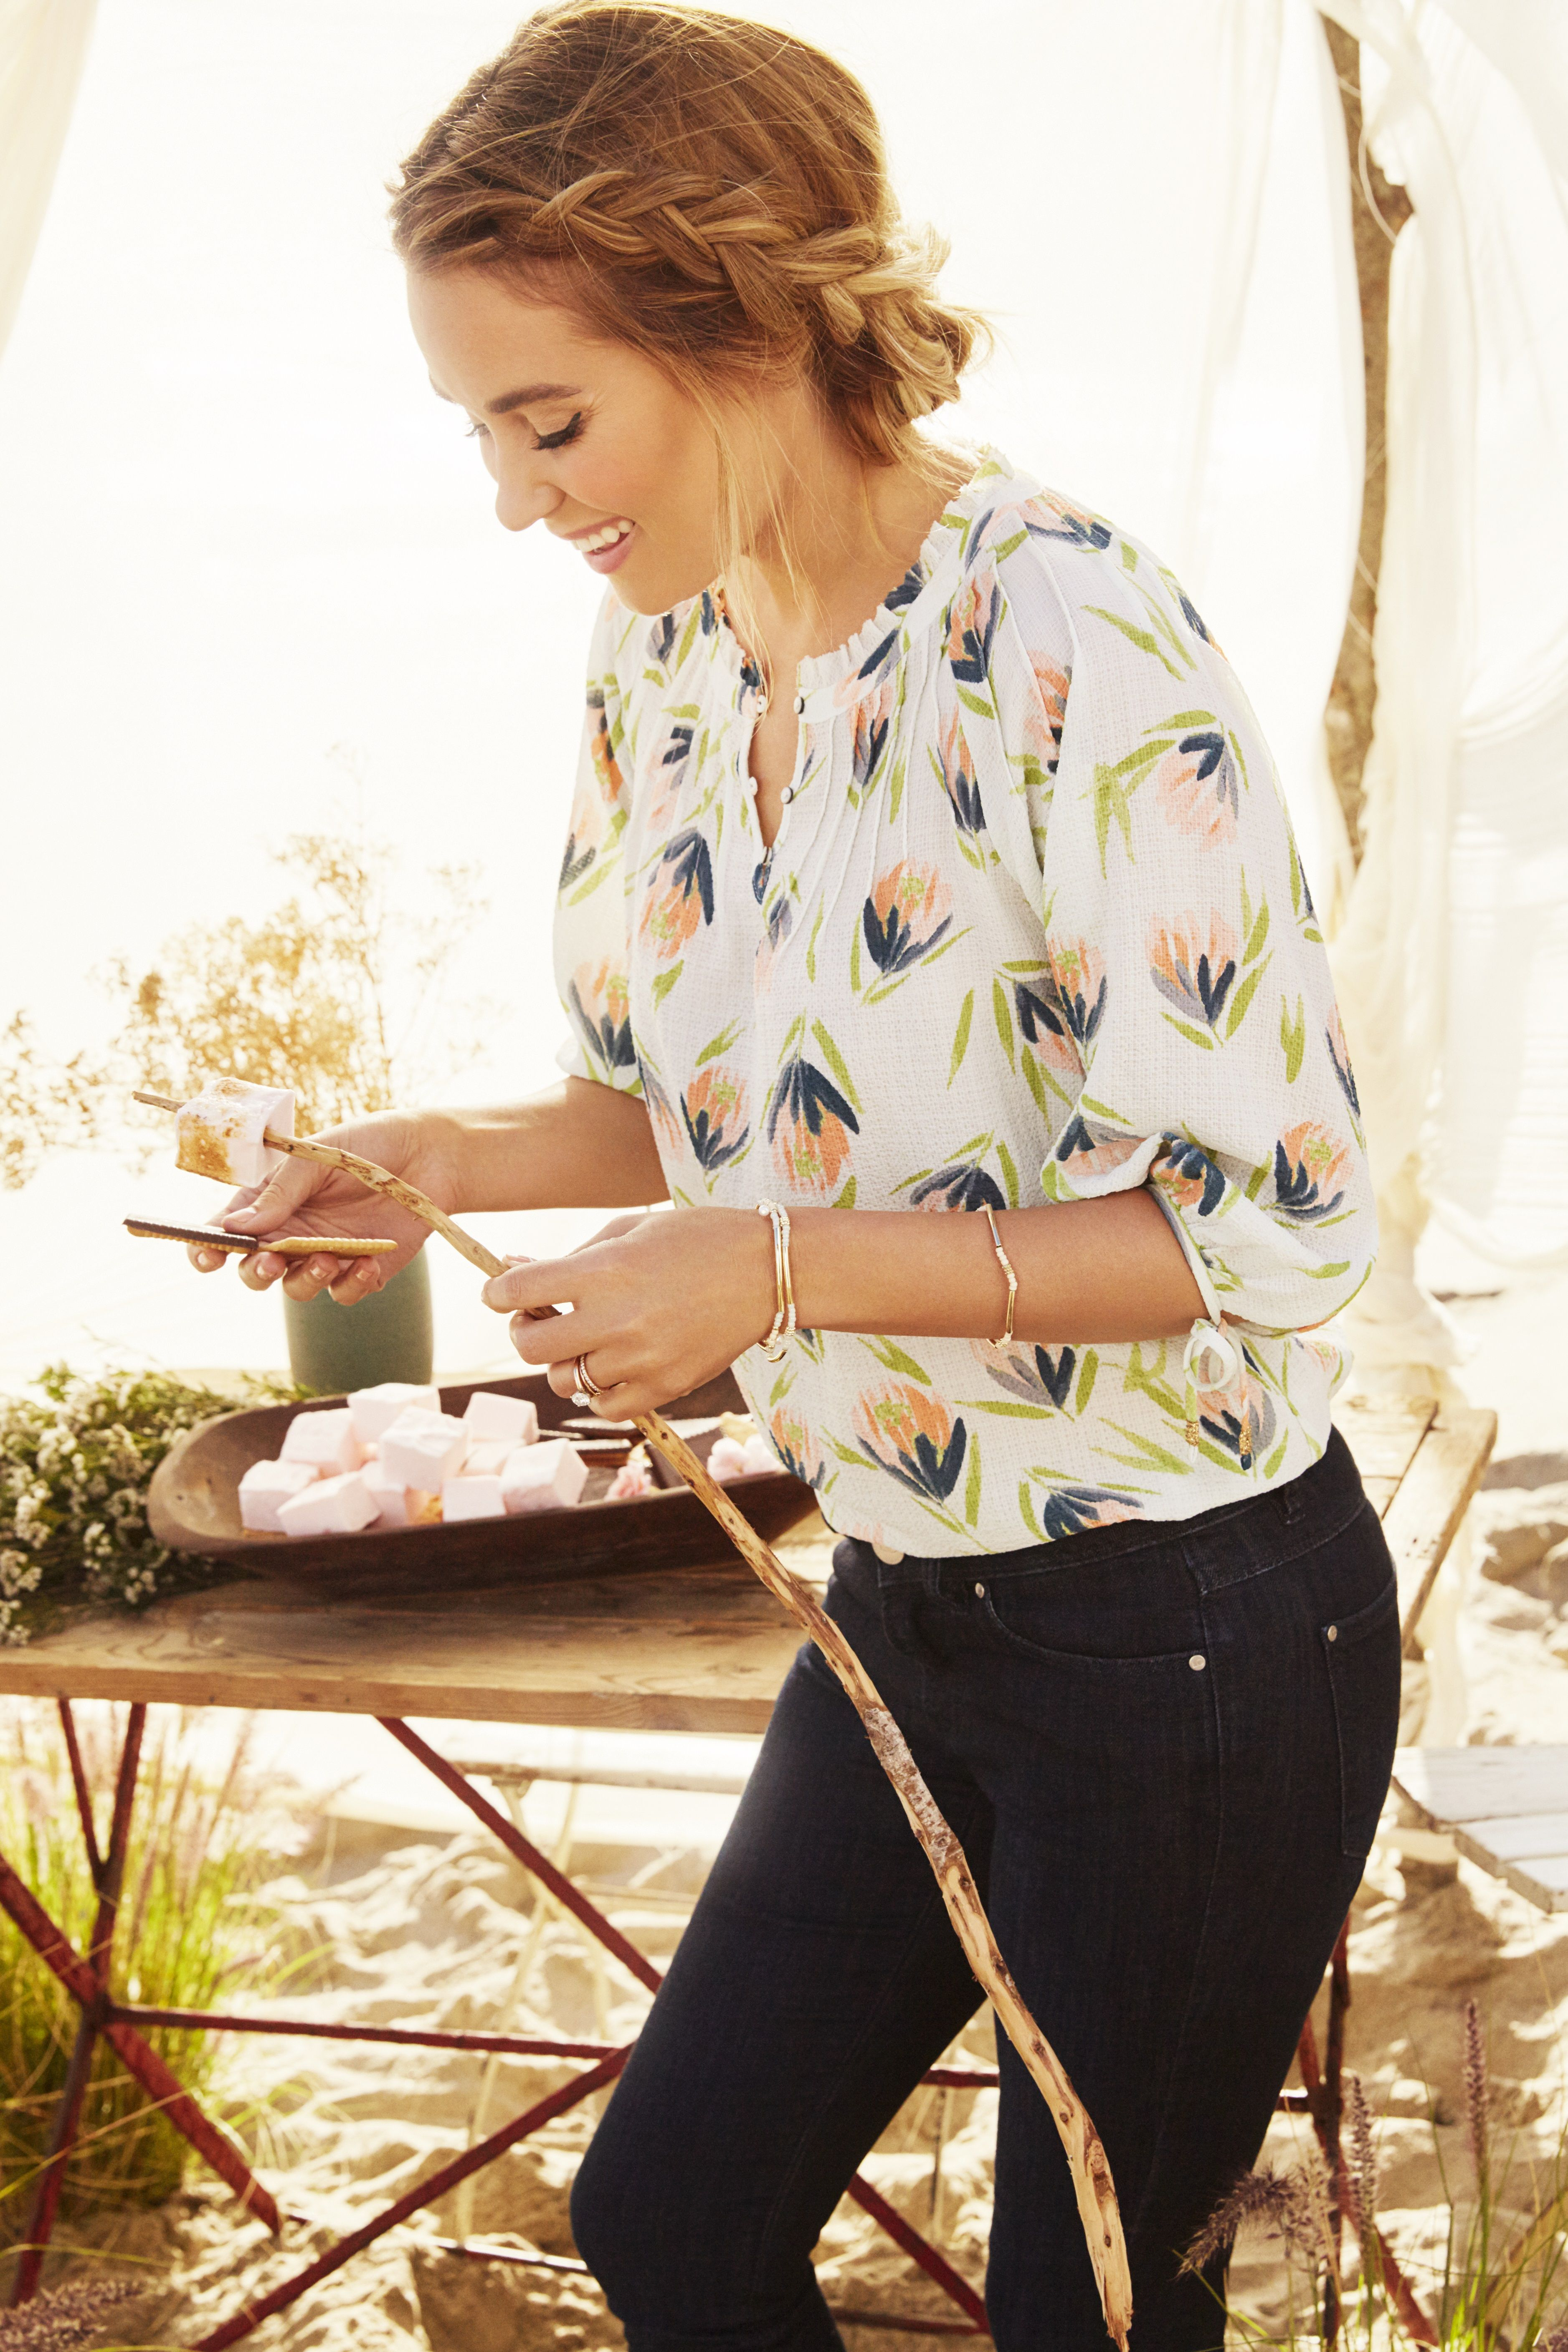 lauren conrad in an lc lauren conrad for kohl�s outfit